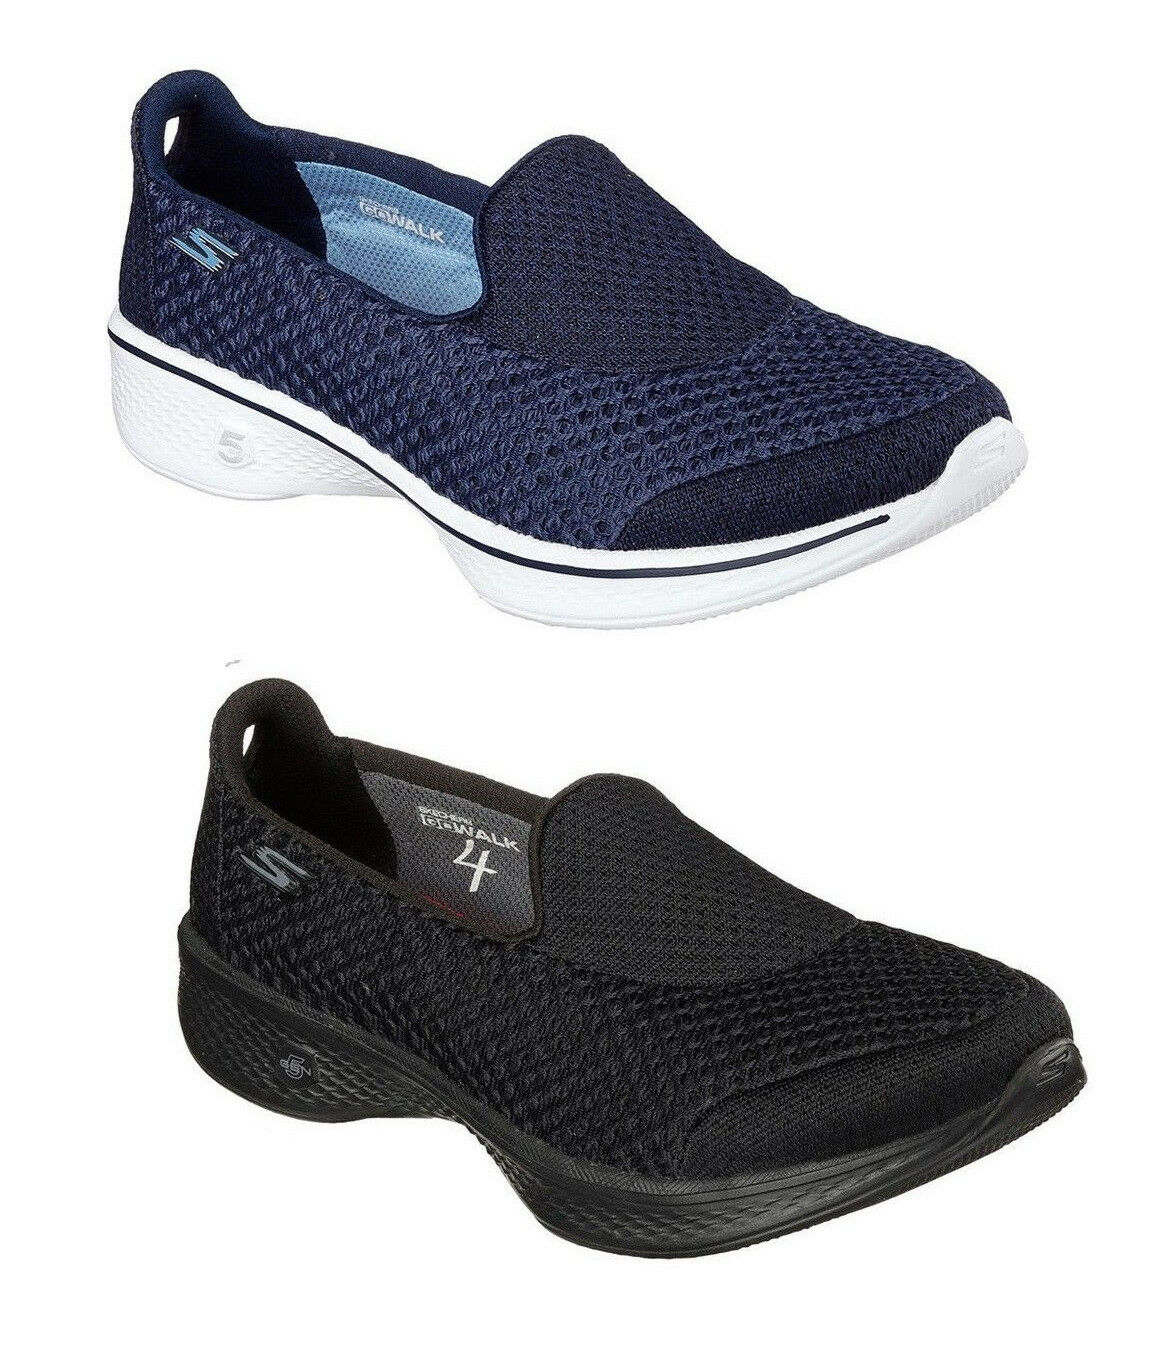 Skechers Go Walk 4 Kindle Donna Memory Foam Slip On Scarpe da ginnastica